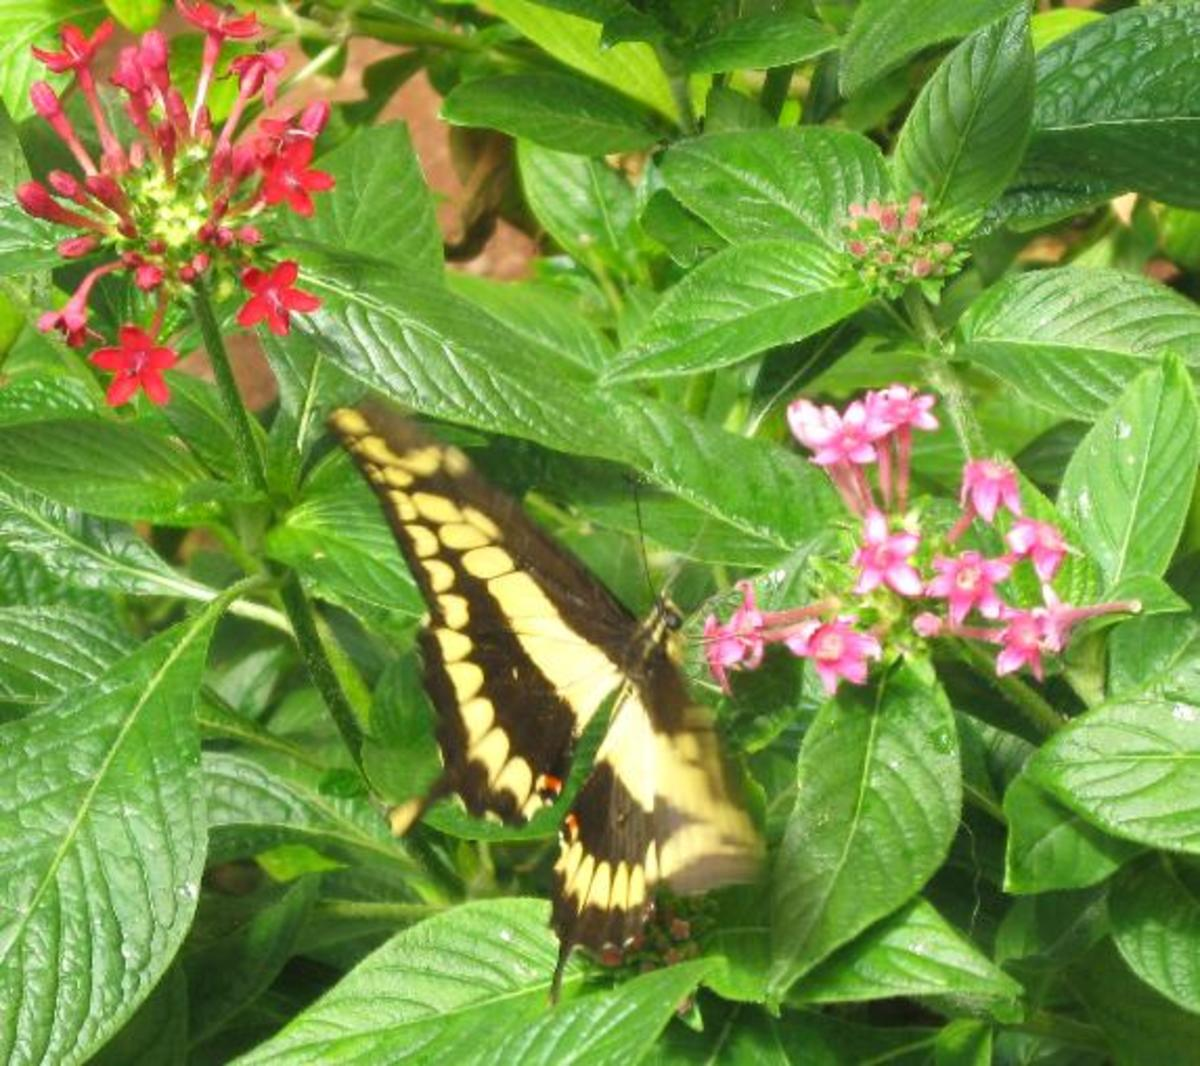 Thoas Swallowtail Butterfly feeding on nectar from flowers